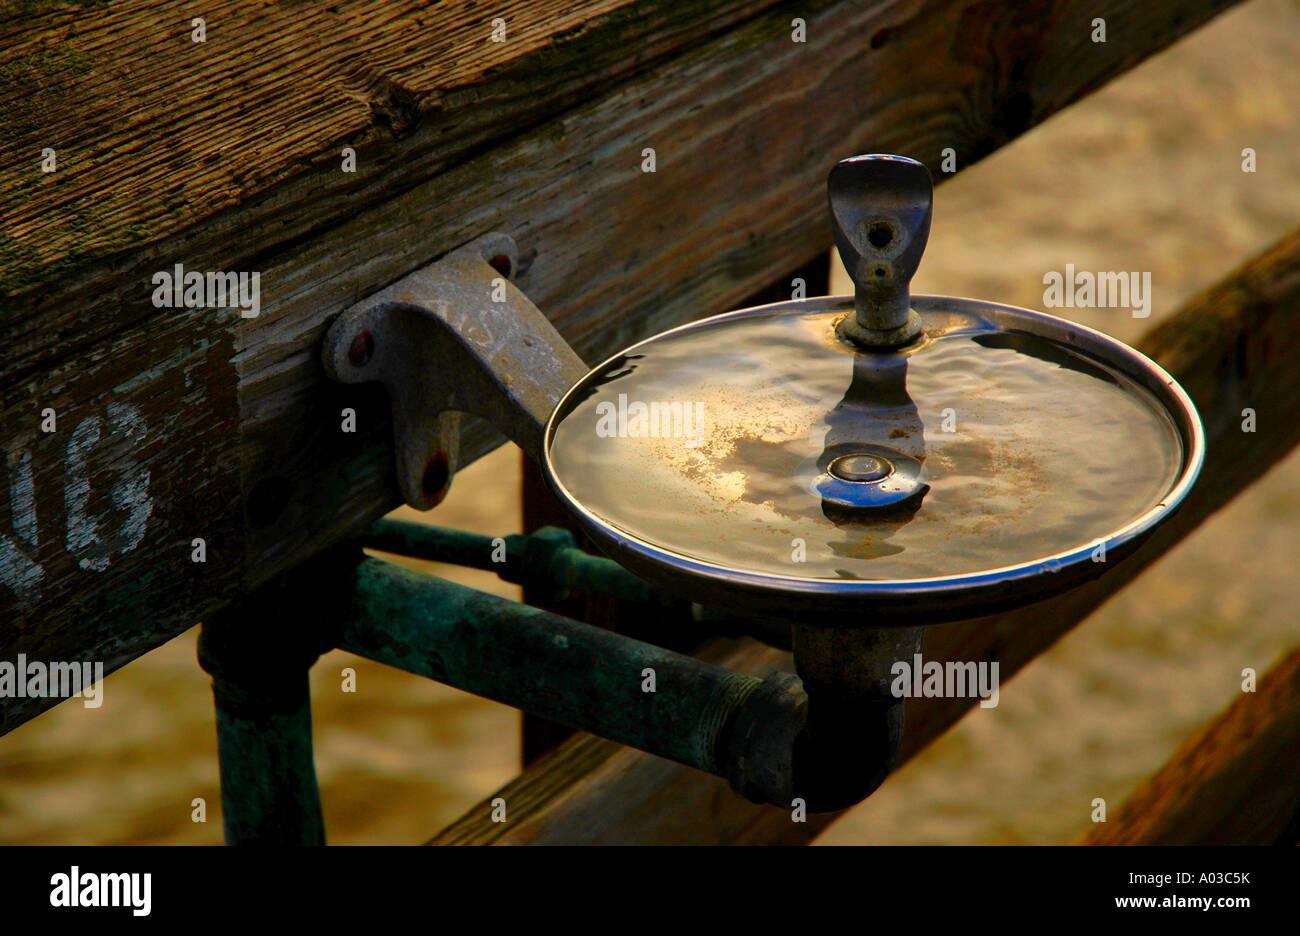 rough drinking water fountain mounted on wood railing in afternoon sunlight at an outdoor beach area